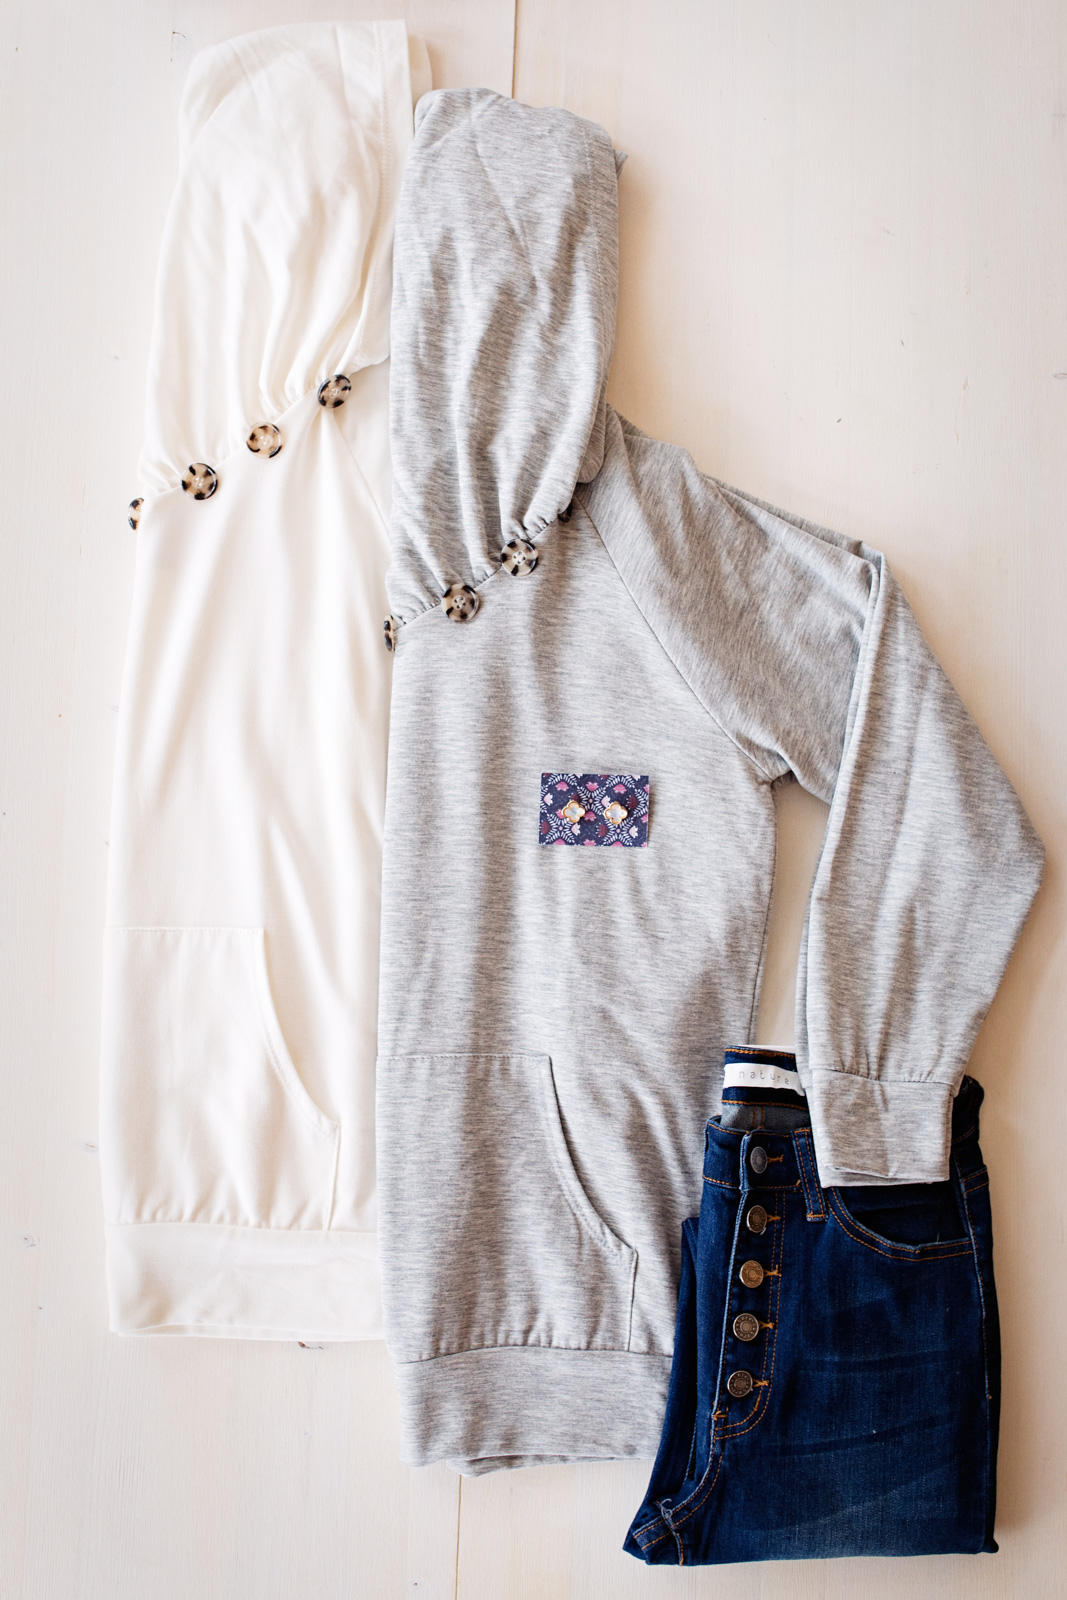 Meadow boutique seattle retail clothing store Yuliya Rae photography branding services-10.jpg